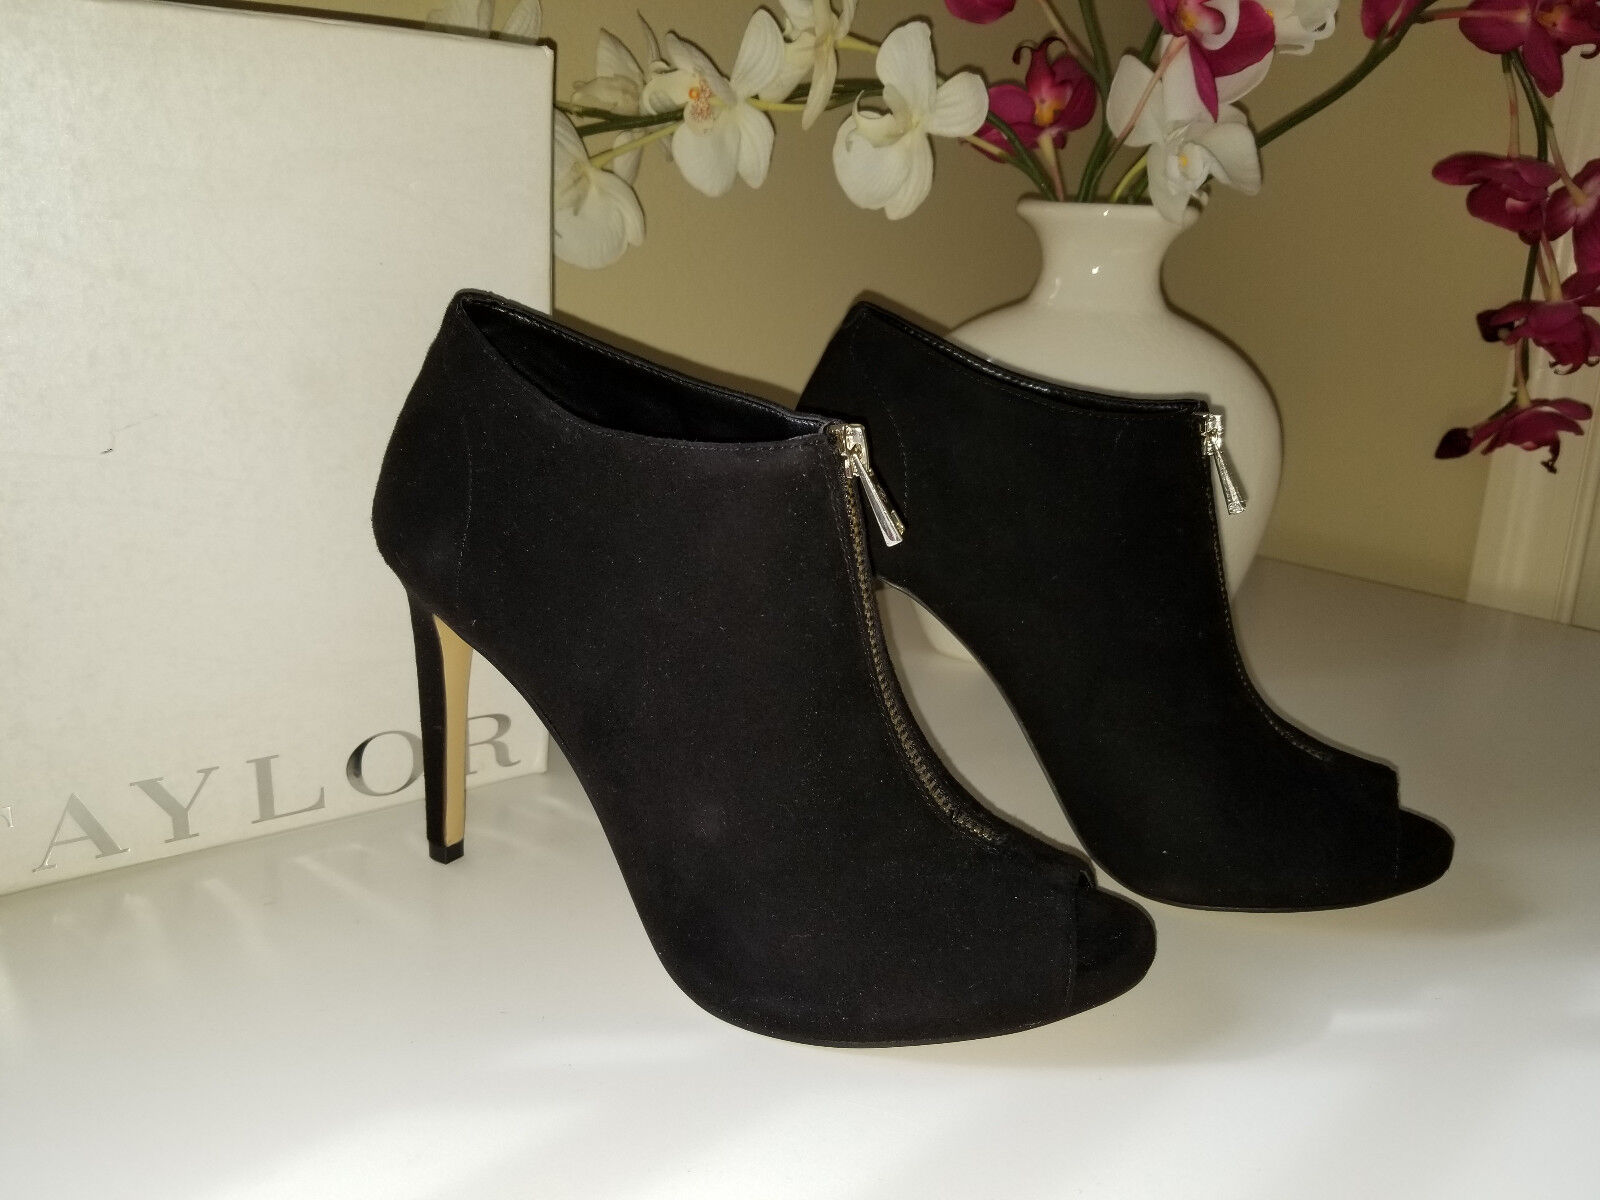 Ann Taylor Mattie Zipper Shootie Black Suede Leather Bootie Sz. 8,5 M   148